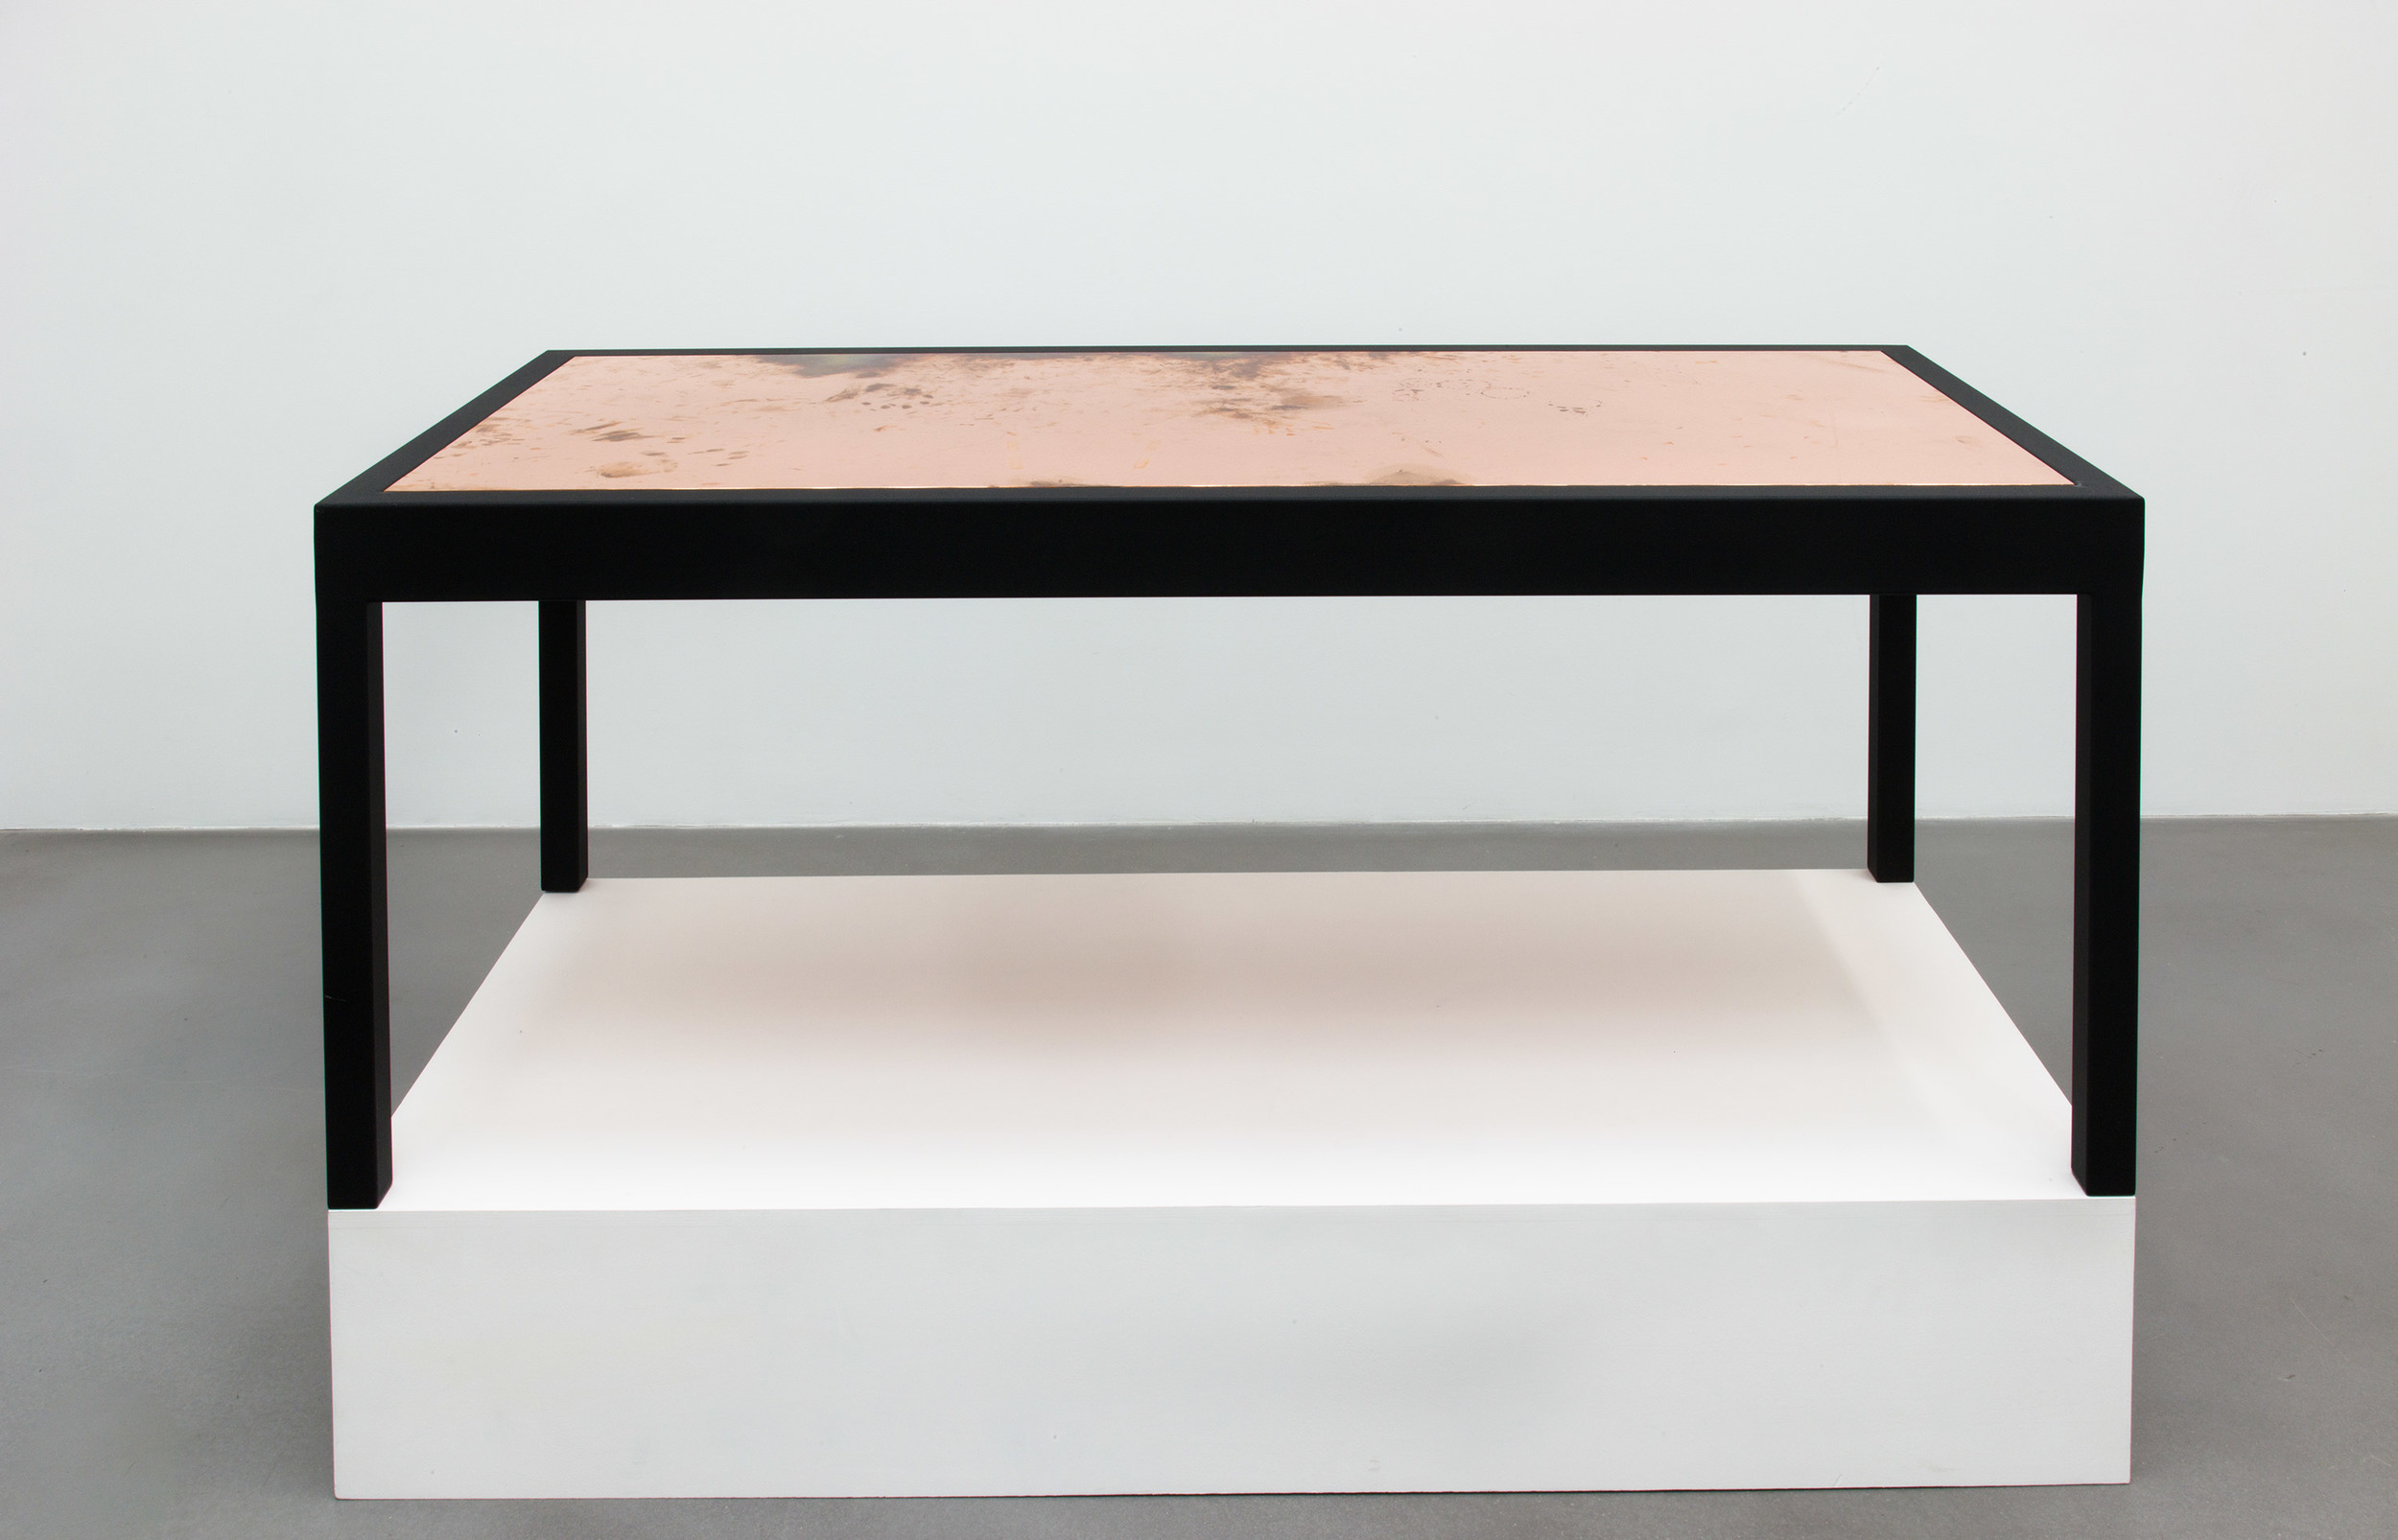 Desk [Source: wood and leather desk designed by BassamFellows from the office of Friedrich Petzel at Friedrich Petzel Gallery, New York. Surrogate: WB72414 (produced in conjunction with Friedrich Petzel, Owner), Copper Surrogate (designed by BassamFellows, 456 West 18th Street, New York, New York, June 26–October 4, 2014), conceived in 2013, produced in 2014, made of polished copper and powder-coated steel with the dimensions 33 1/2 x 72 x 1 1/2 inches. Production completed by Benchmark Scenery Incorporated, Glendale, California from 48 ounce Electrolytic-Tough-Pitch C11000 Copper Alloy cut from 60 x 120 inch mirror-polished sheet and 24 ounce Electrolytic-Tough-Pitch C11000 Copper Alloy cut from 60 x 120 inch mirror-polished sheet, with formed corners where necessary, copper plated hardware, perimeter edge French cleat system, and separate black powder-coated steel support structures. $12,076.00 production cost including travel and storage crates with floating lockable cleat system. Unexposed surrogates shipped by Crate 88 Incorporated from Los Angeles to New York, June 19 through June 23, 2014. Installed in place of BassamFellows desk at 456 West 18th Street, New York on June 26, 2014, exposure through the duration of A Machinery for Living organized by Walead Beshty and Walead Beshty: Performances Under Working Conditions at Friedrich Petzel Gallery, New York, closing October 4, 2014. Desk has one base surrogate with the dimensions 28 1/2 x 71 5/8 x 33 1/2 inches.]    2014   Polished copper table top and powder-coated steel  Table: 1 1/2 x 72 x 33 7/16 inches; Base: 28 1/2 x 71 5/8 x 33 1/2 inches